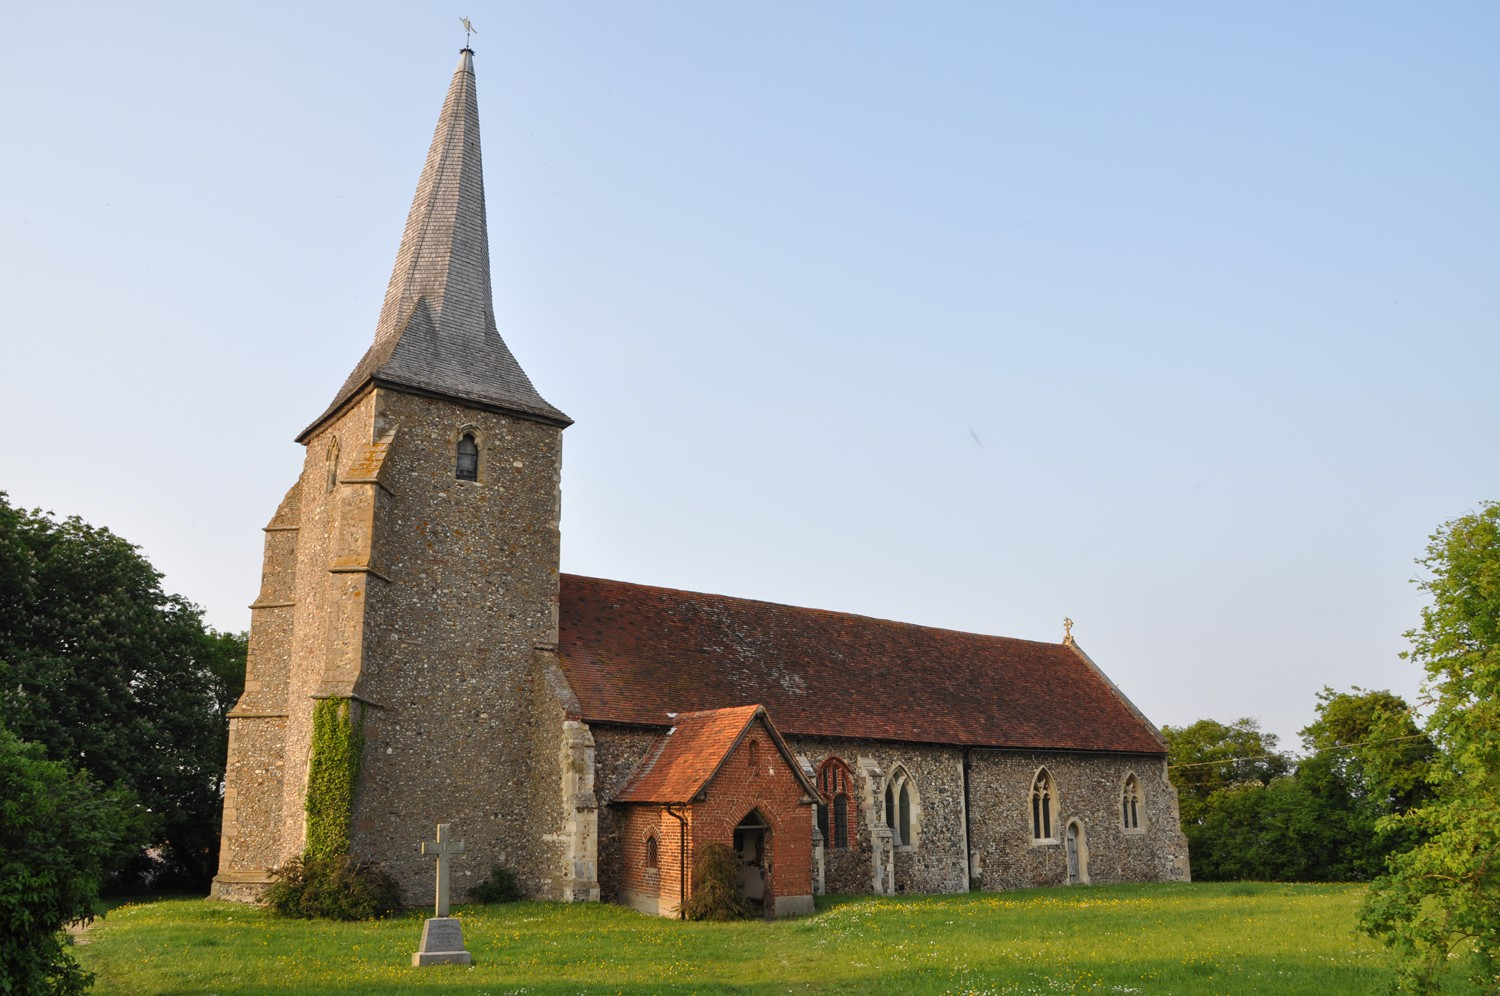 The distinctive twisted spire of the church at Great Henny